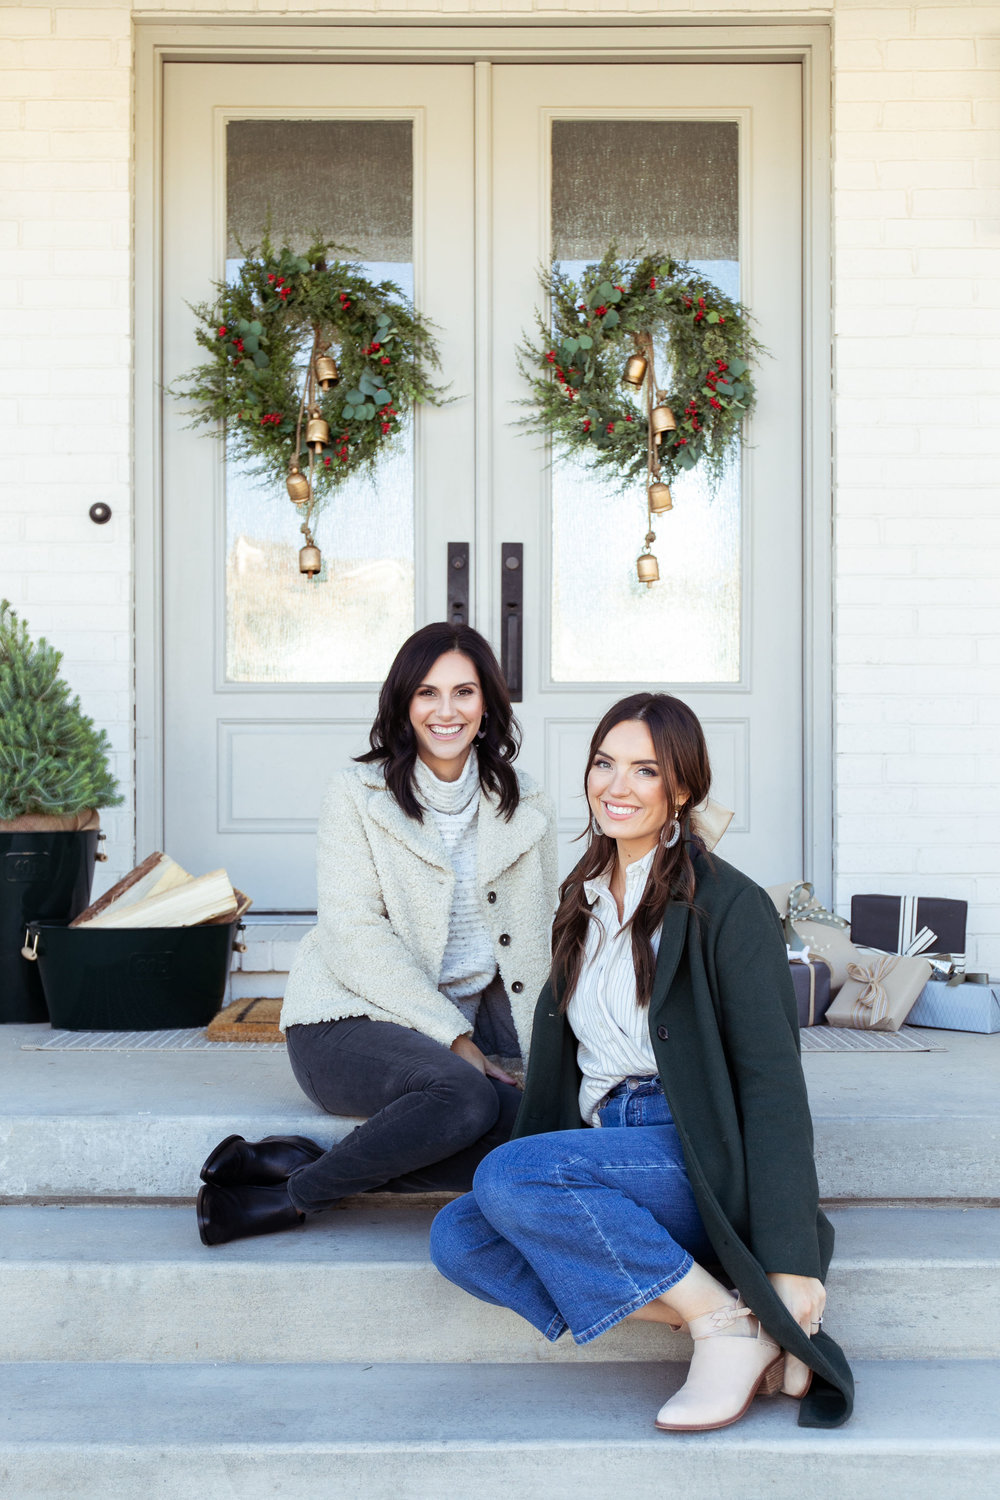 SaltBox_Holiday_BeckyKimballPhoto_63.JPG